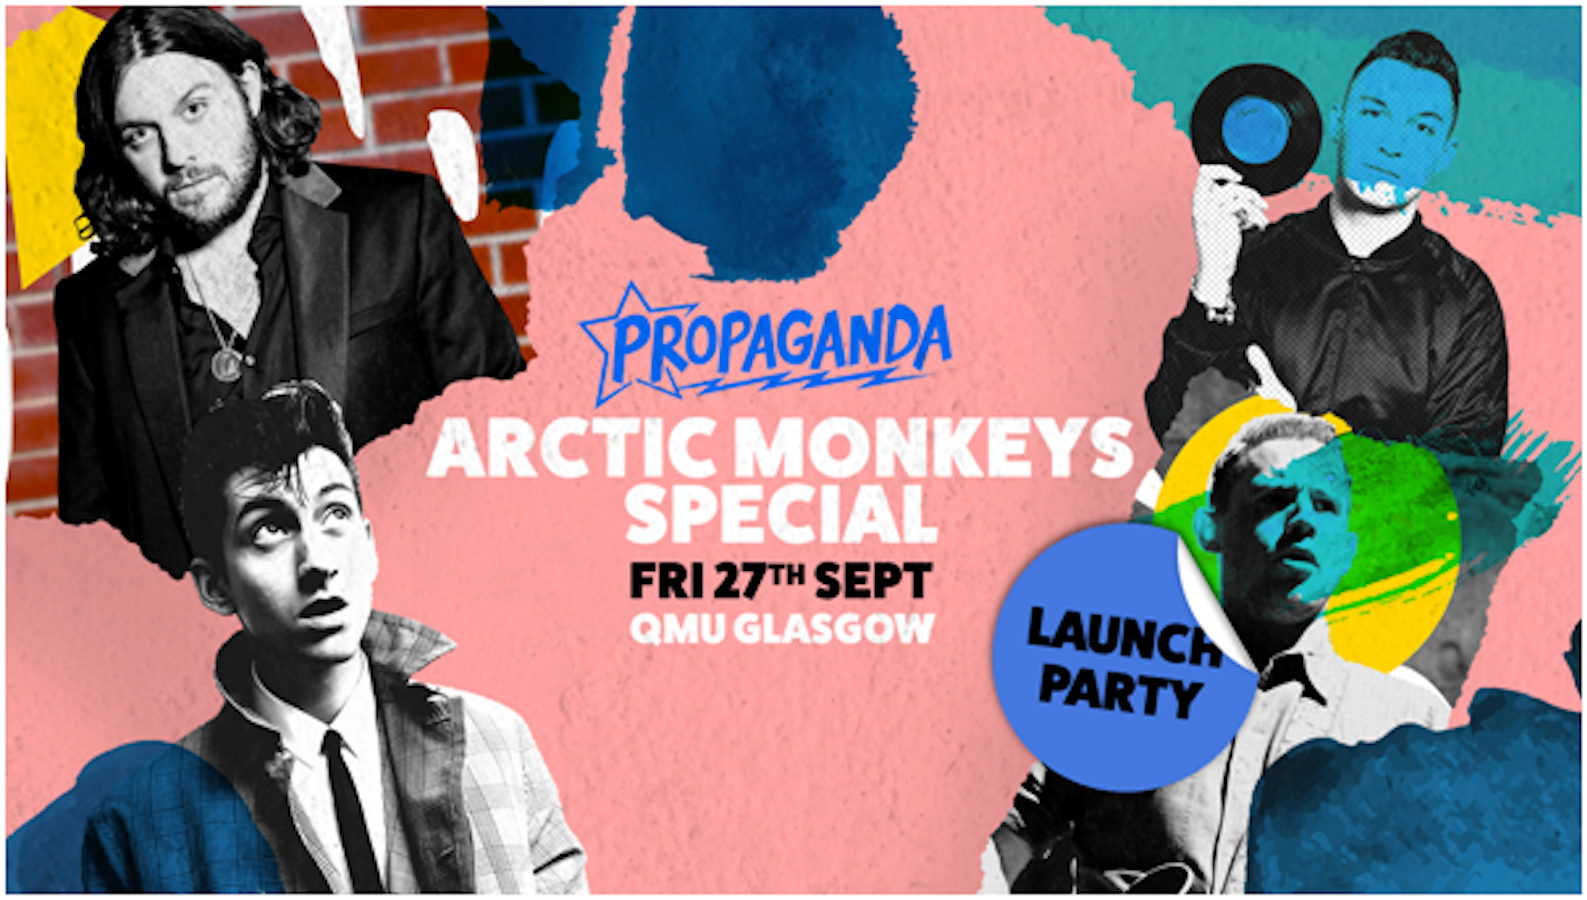 Propaganda Glasgow – Launch Party at QMU: Arctic Monkeys Special!